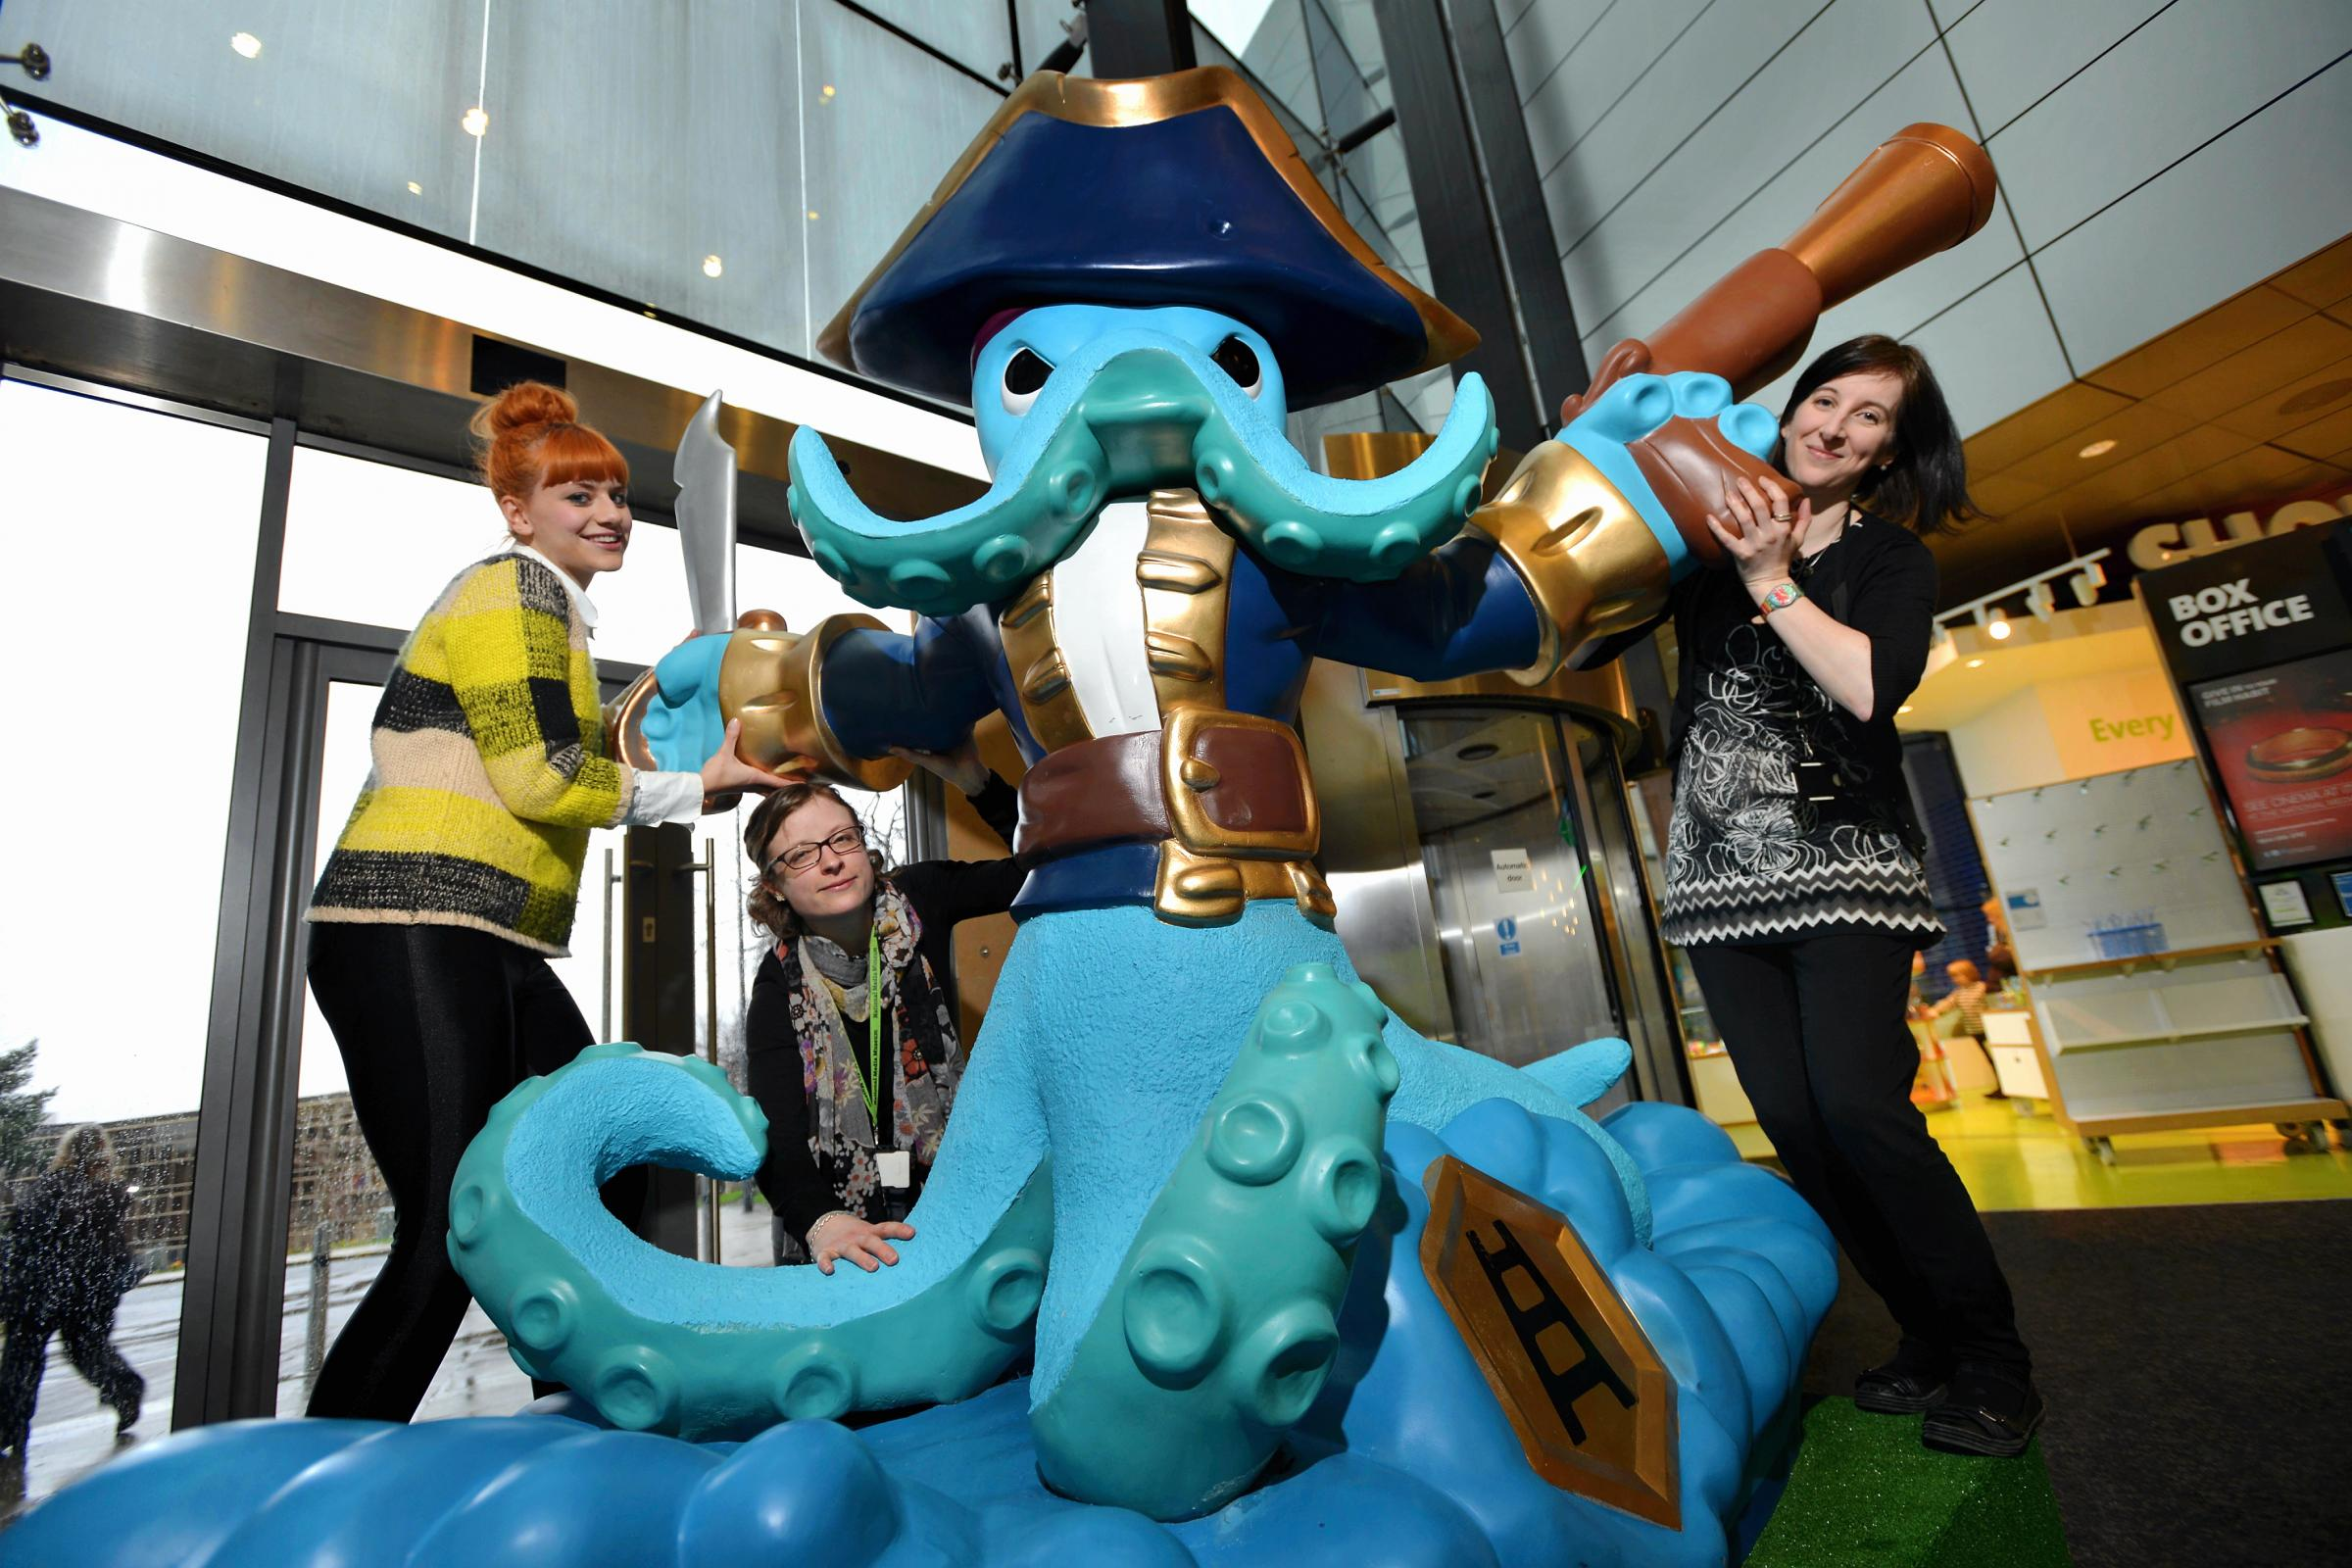 STATUE: Pictured with Skylander are (from left) Sophie Loftus, Heather Johnson and Anna Ward from the museum